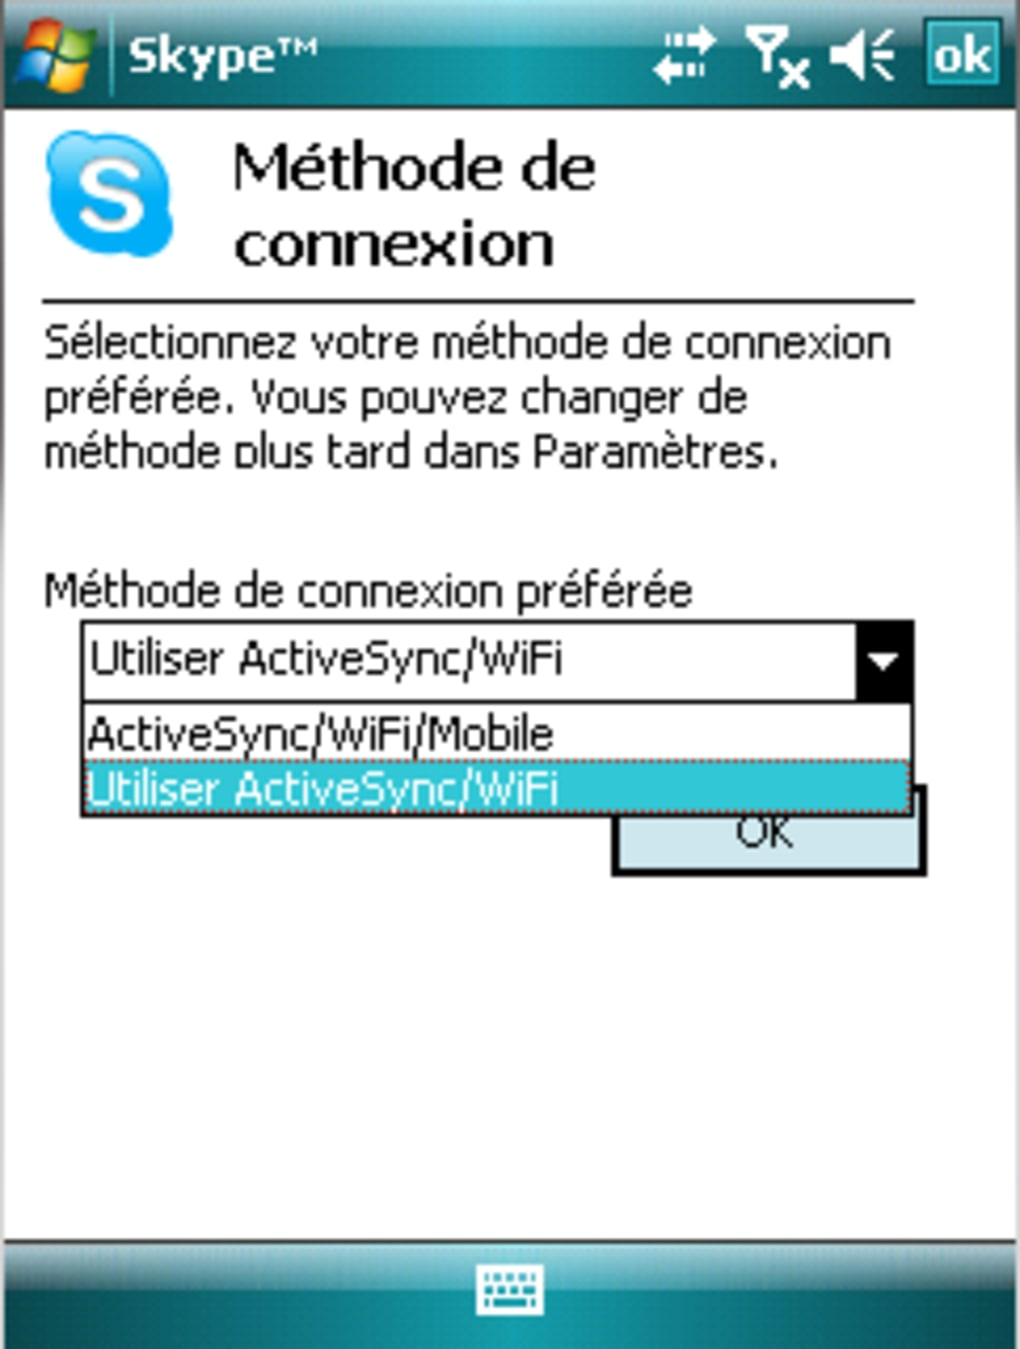 Telecharger skype sur mobile android